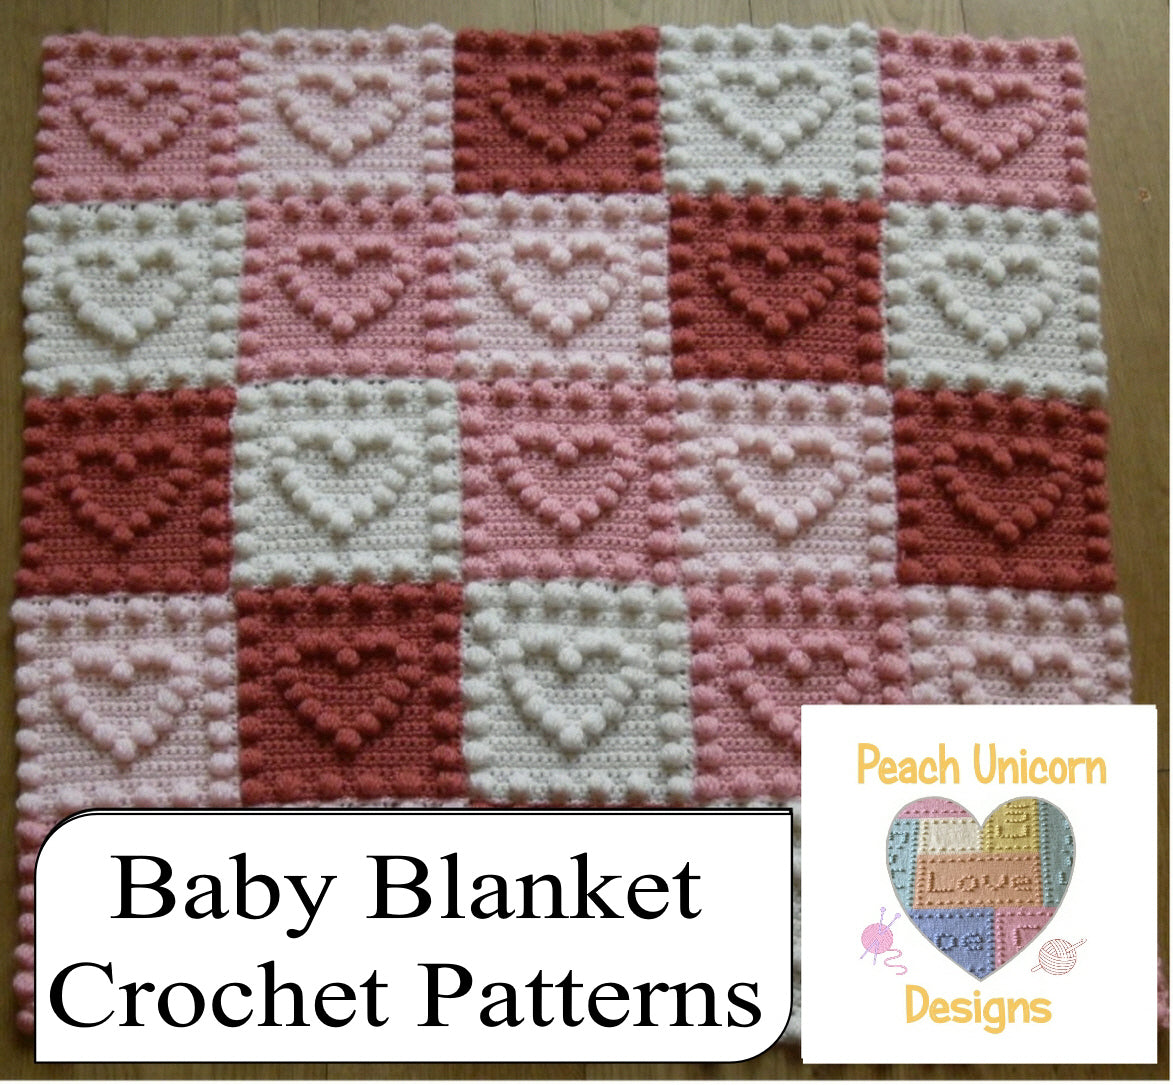 20 Baby Blanket Crochet Patterns Peach Unicorn Designs Peach Unicorn Designs Knitting Crochet Patterns